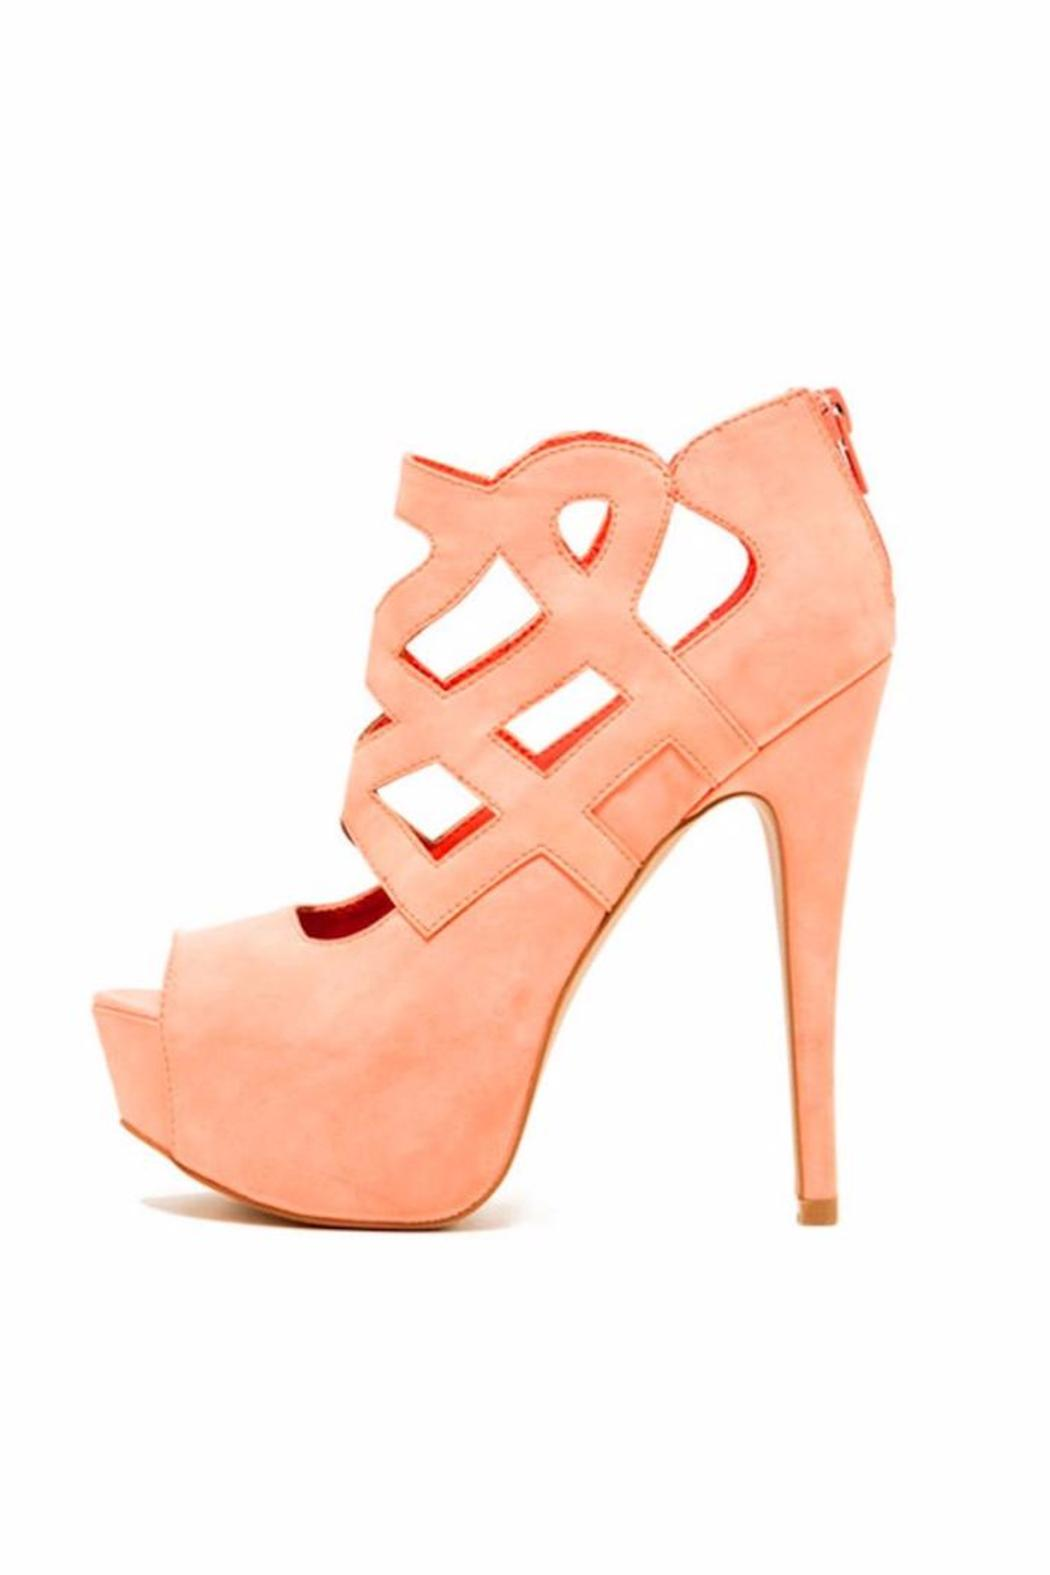 Qupid Caged Peep-Toe Stiletto - Main Image